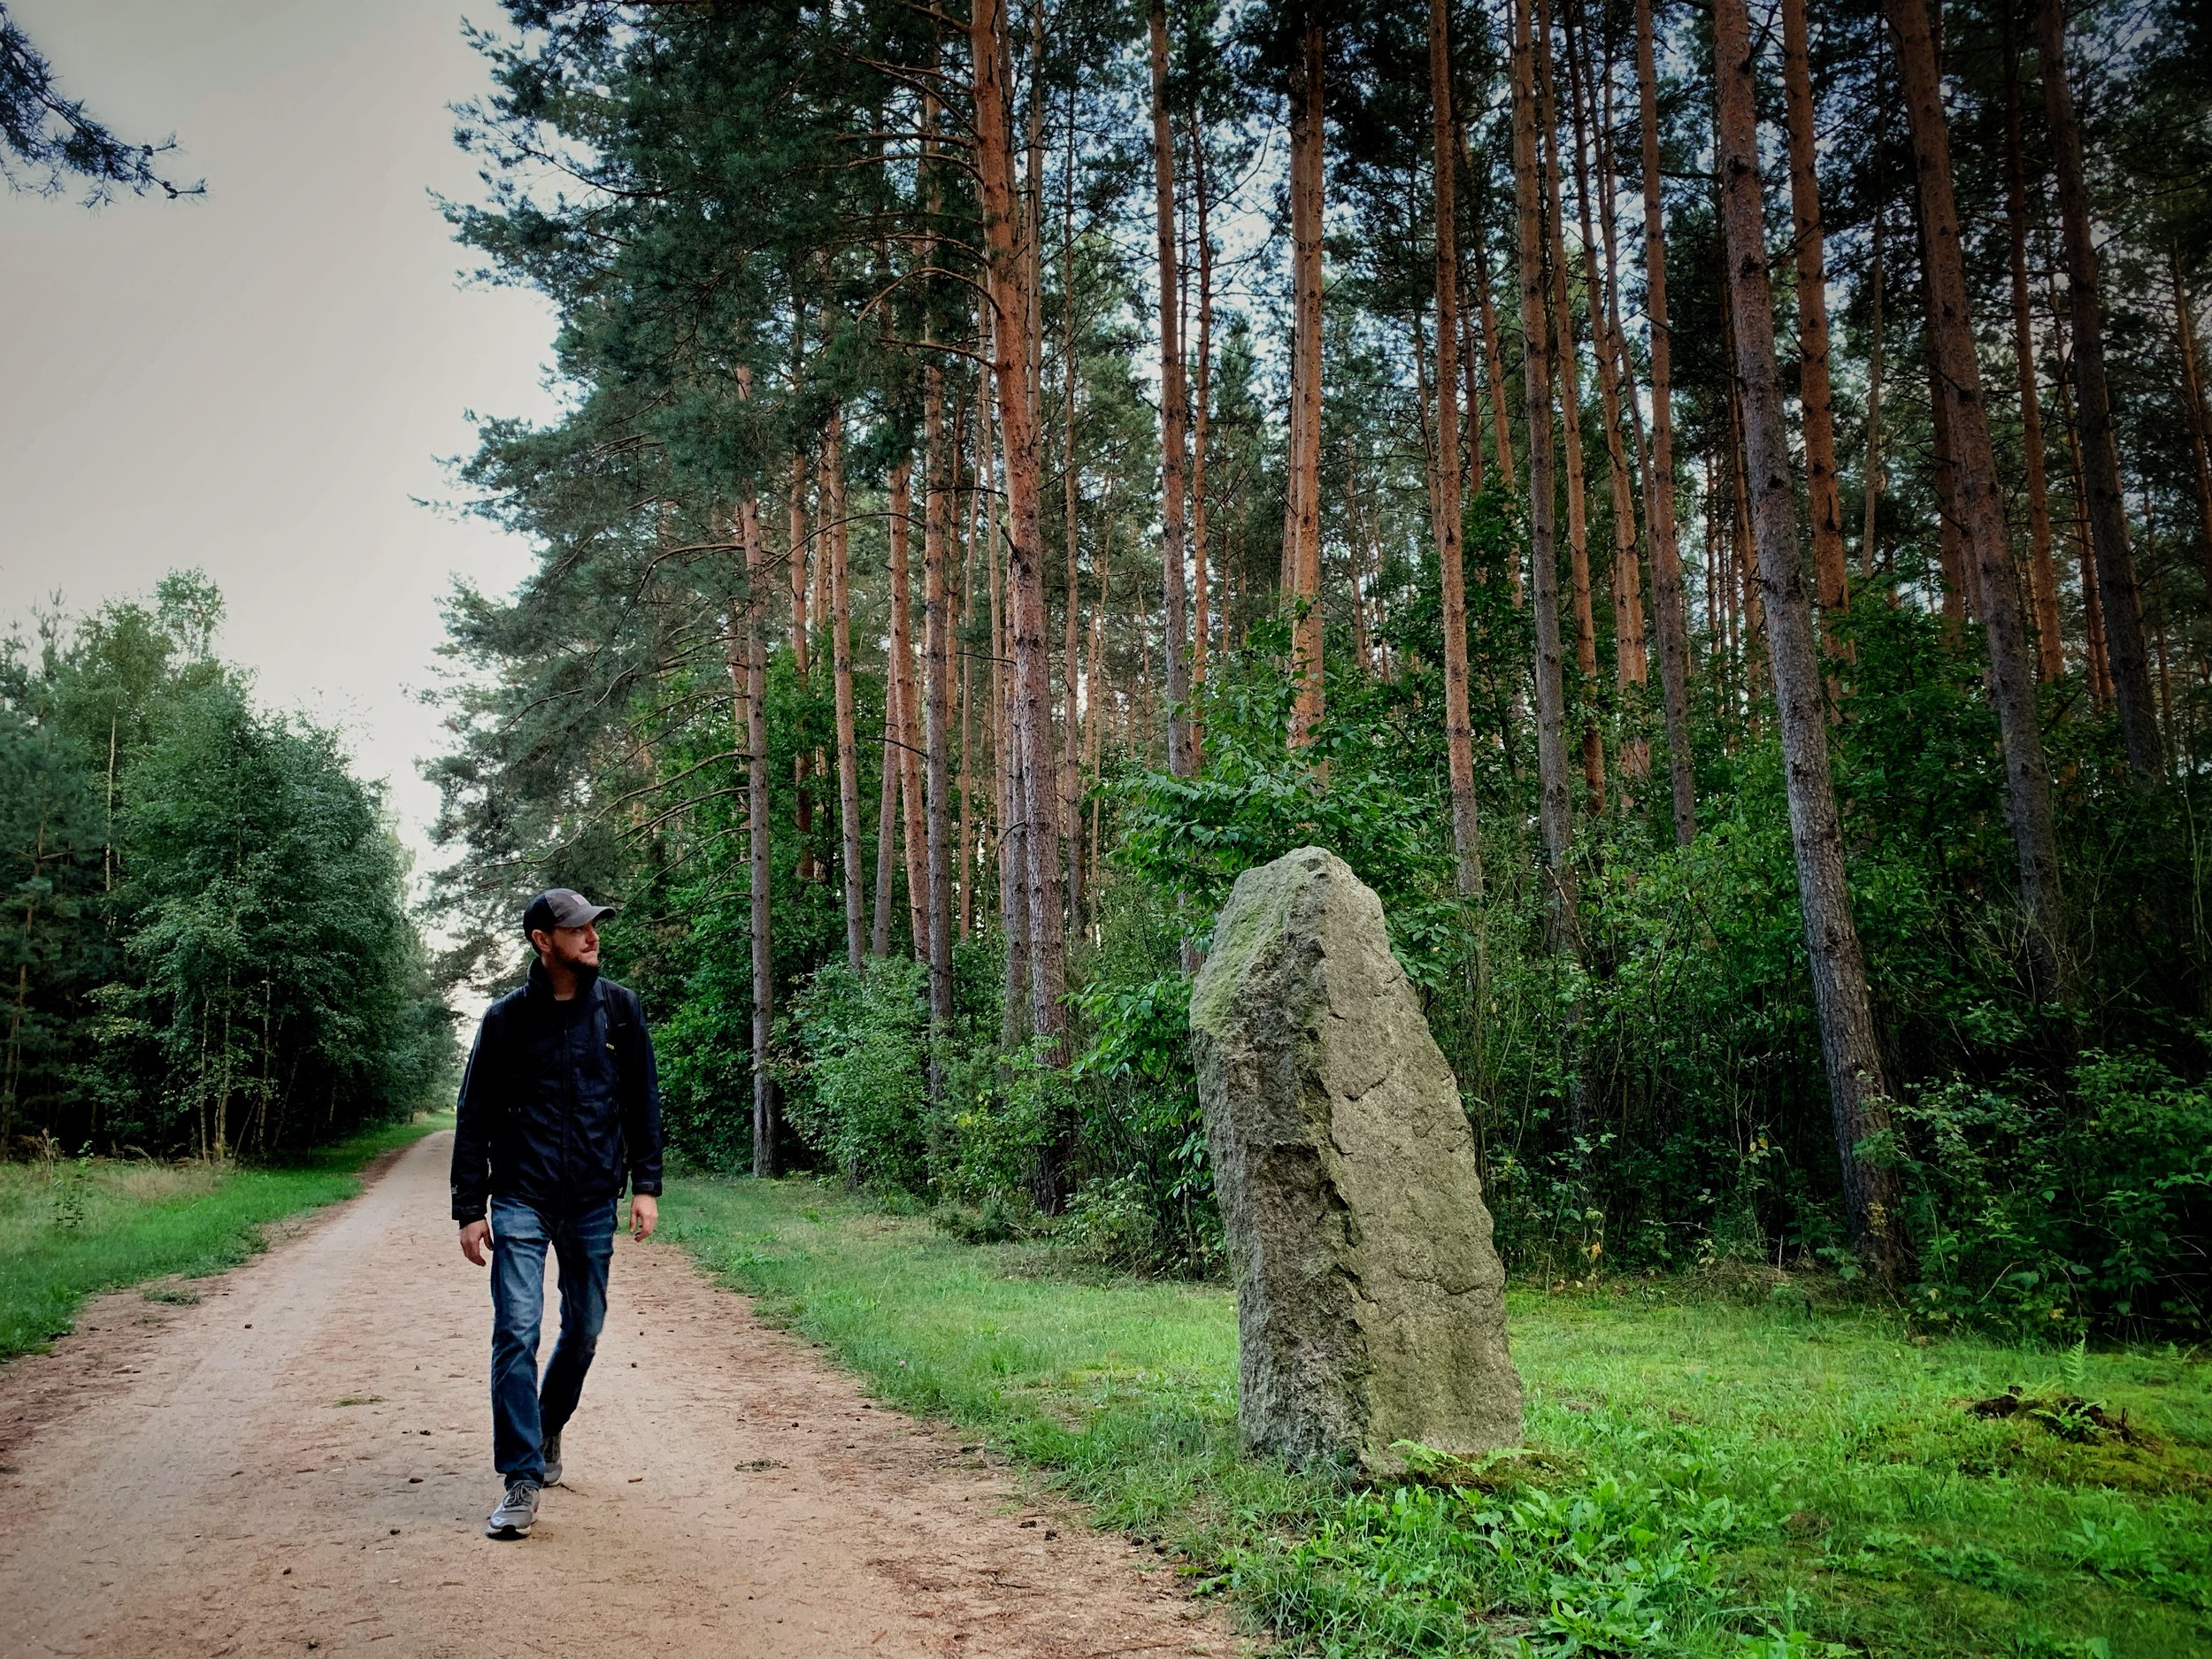 Walking along the perimeter and forest area leading into Treblinka